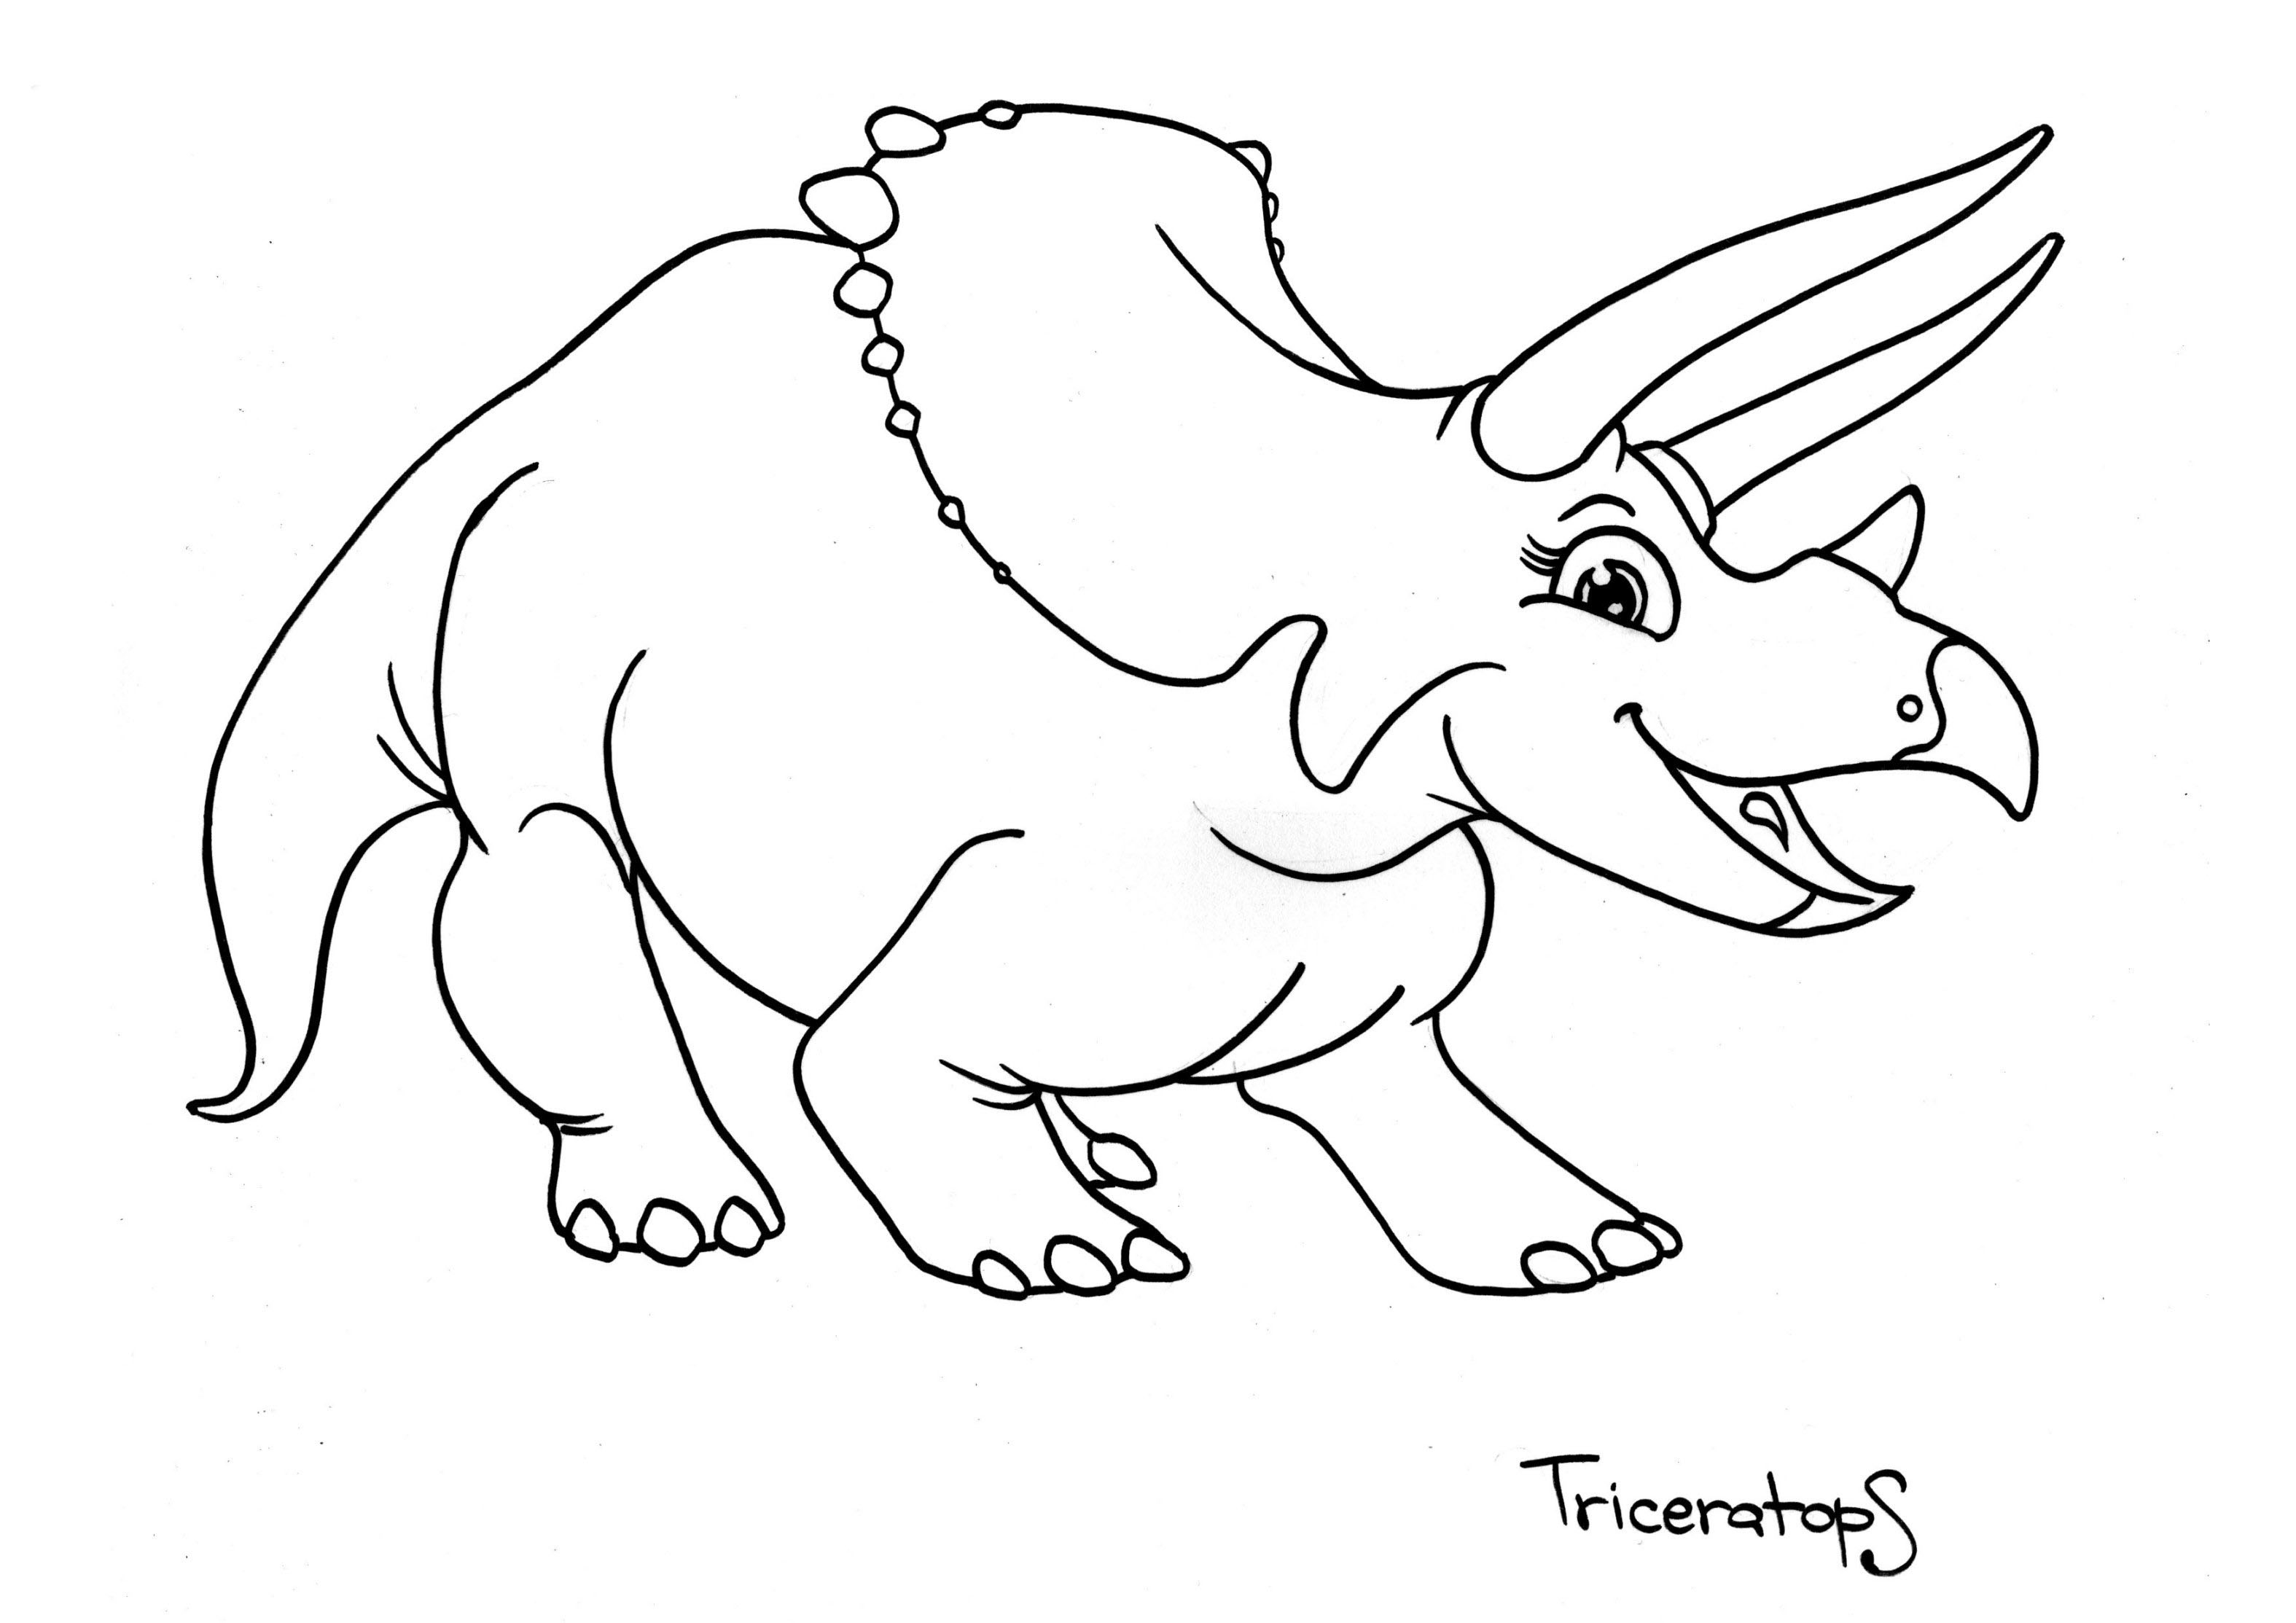 dinosaur printout dinosaur colouring pages in the playroom dinosaur printout